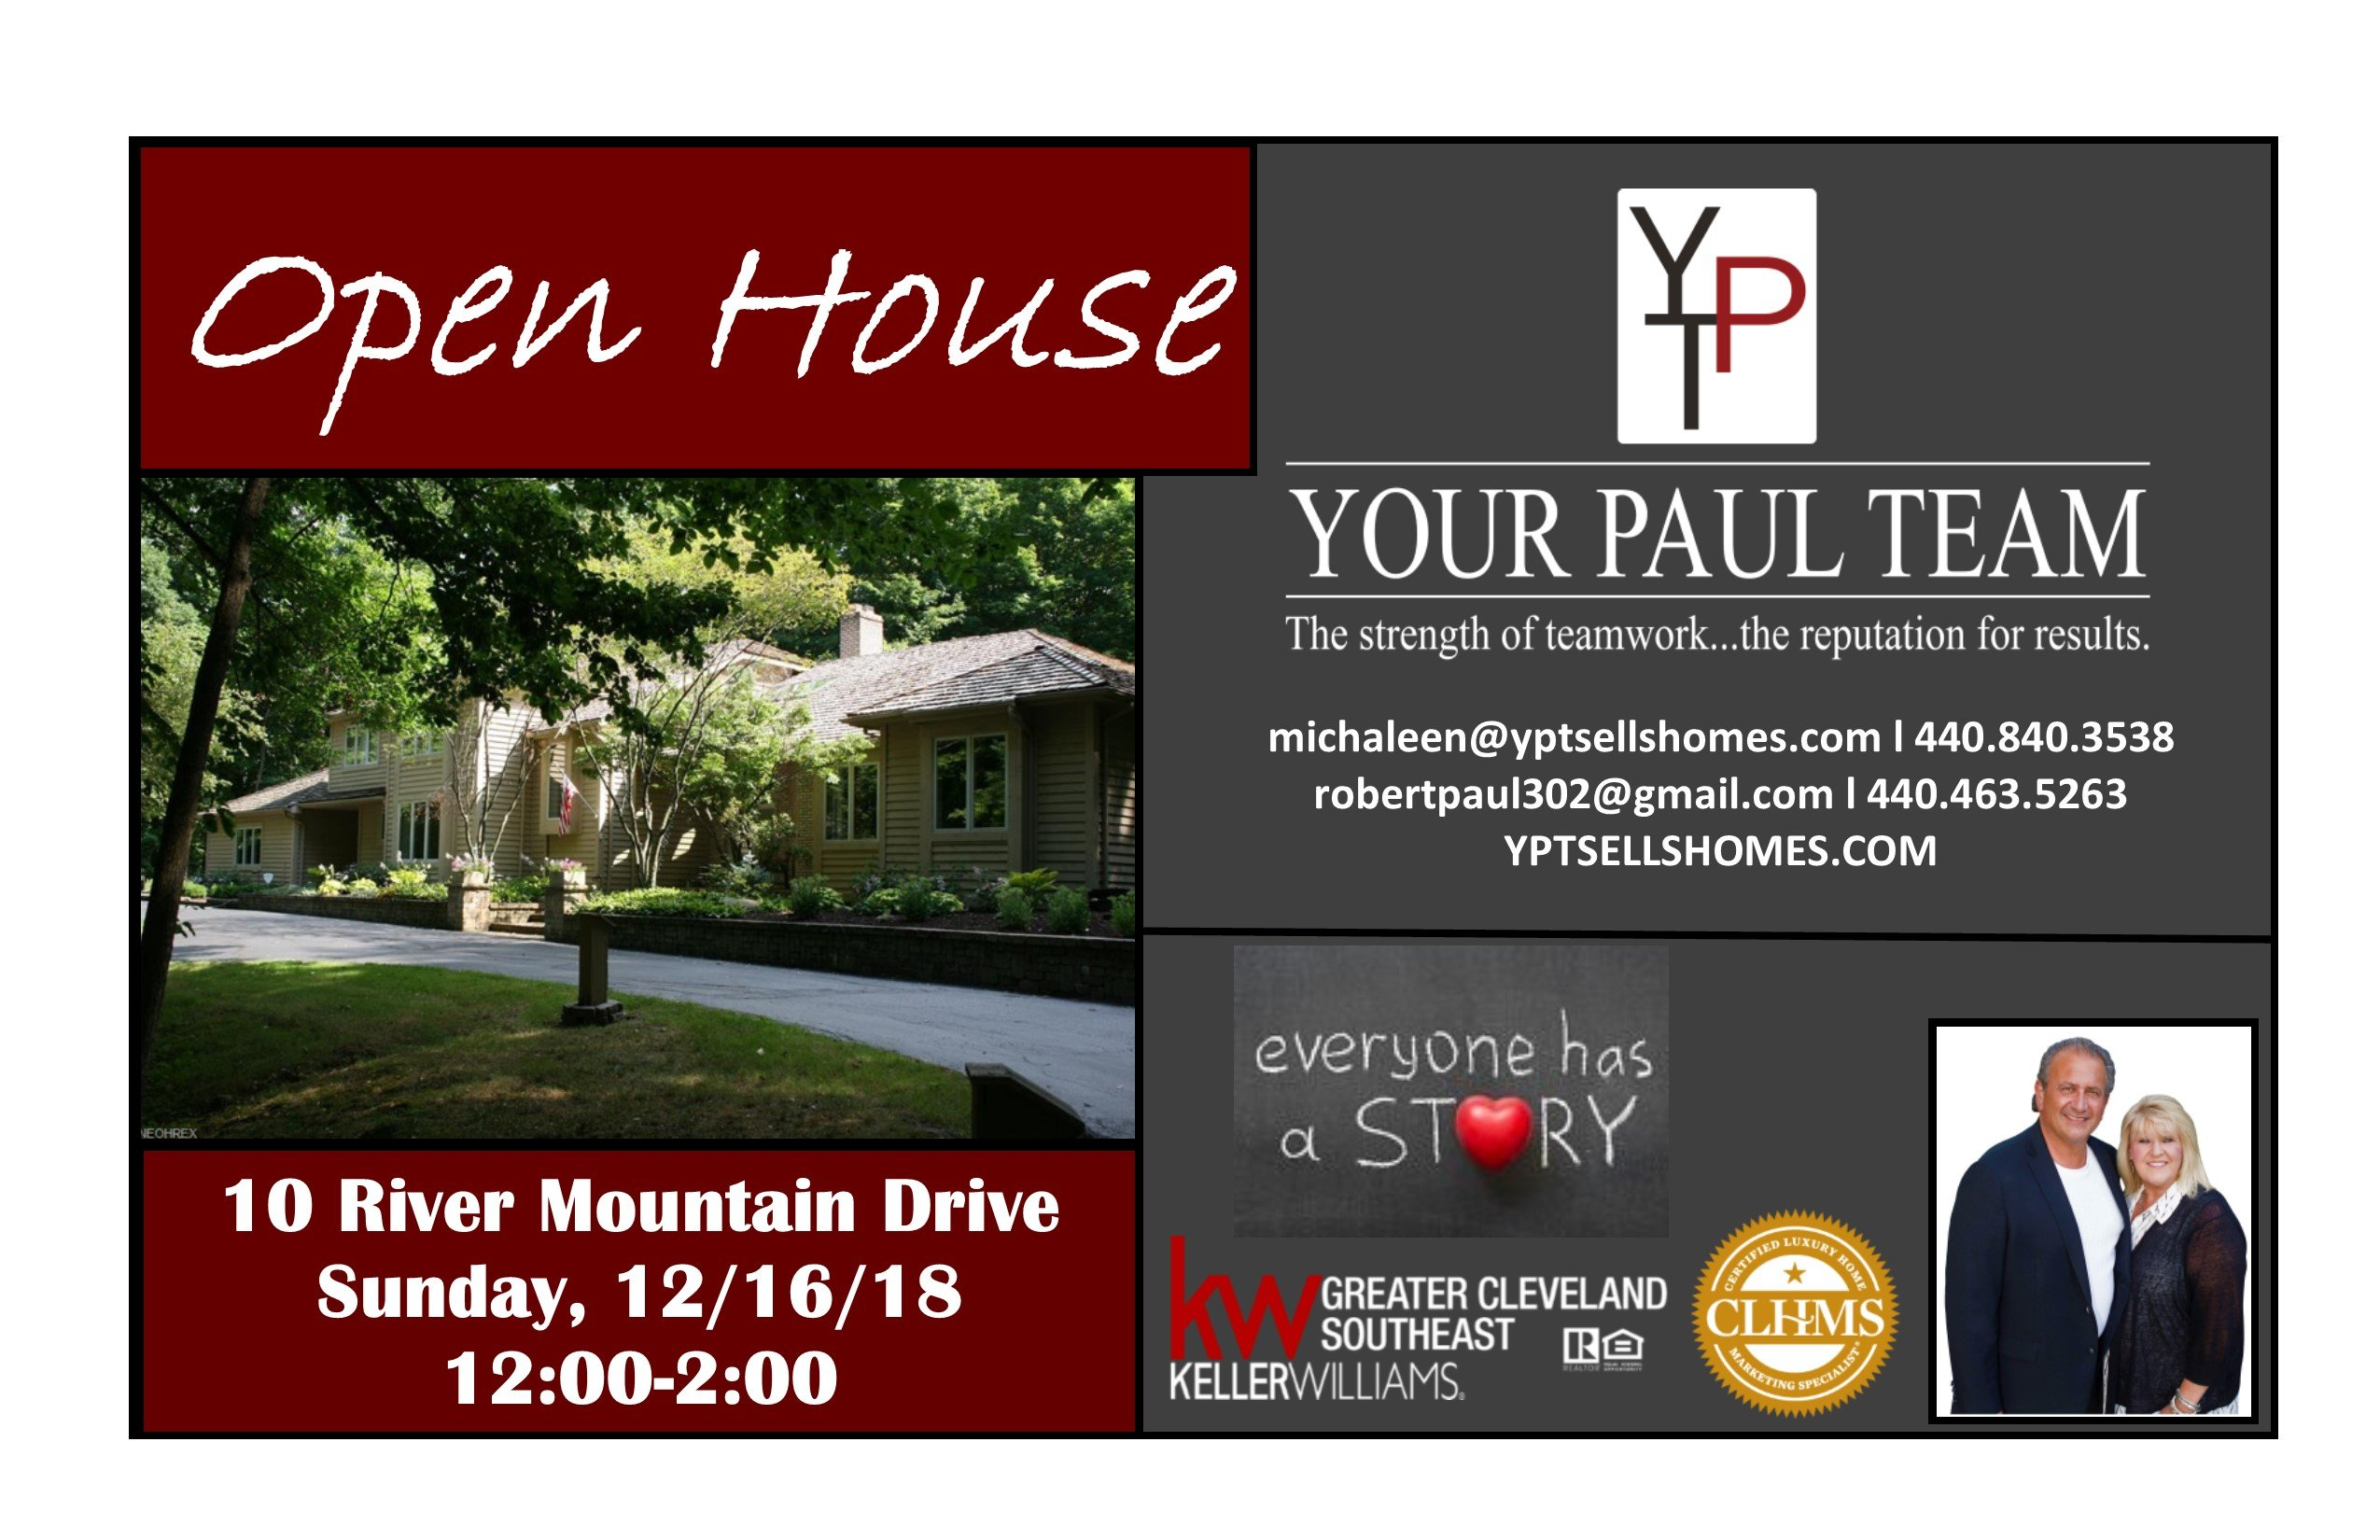 Open House This Sunday-December 16th , 10 River Mountain, Moreland Hills